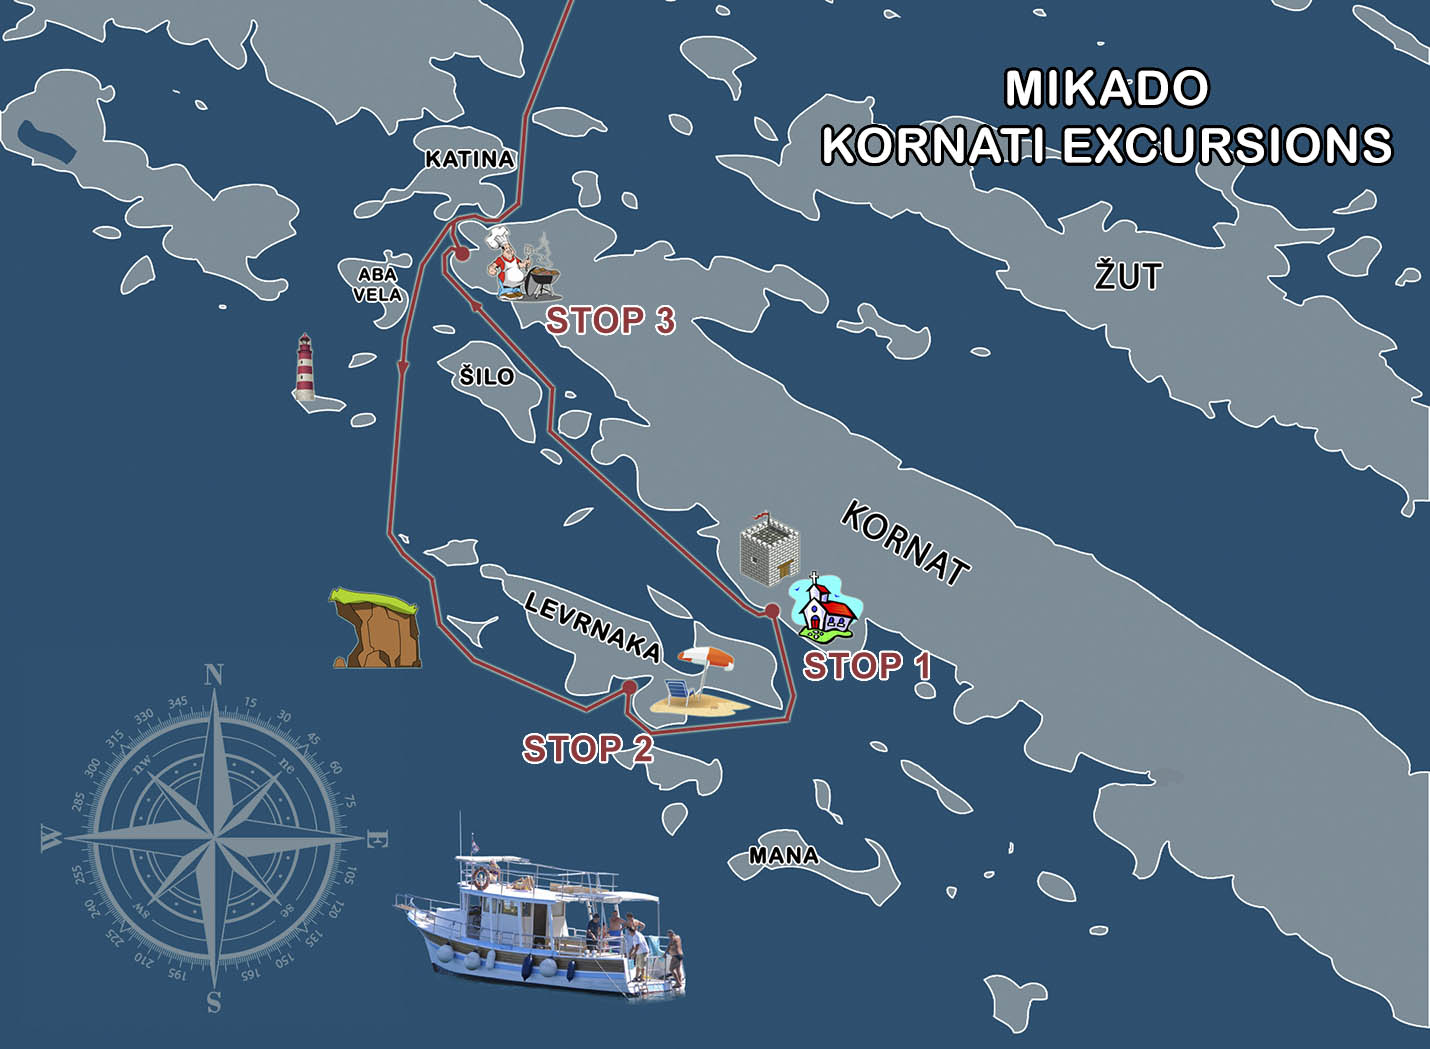 Kornati excursions route